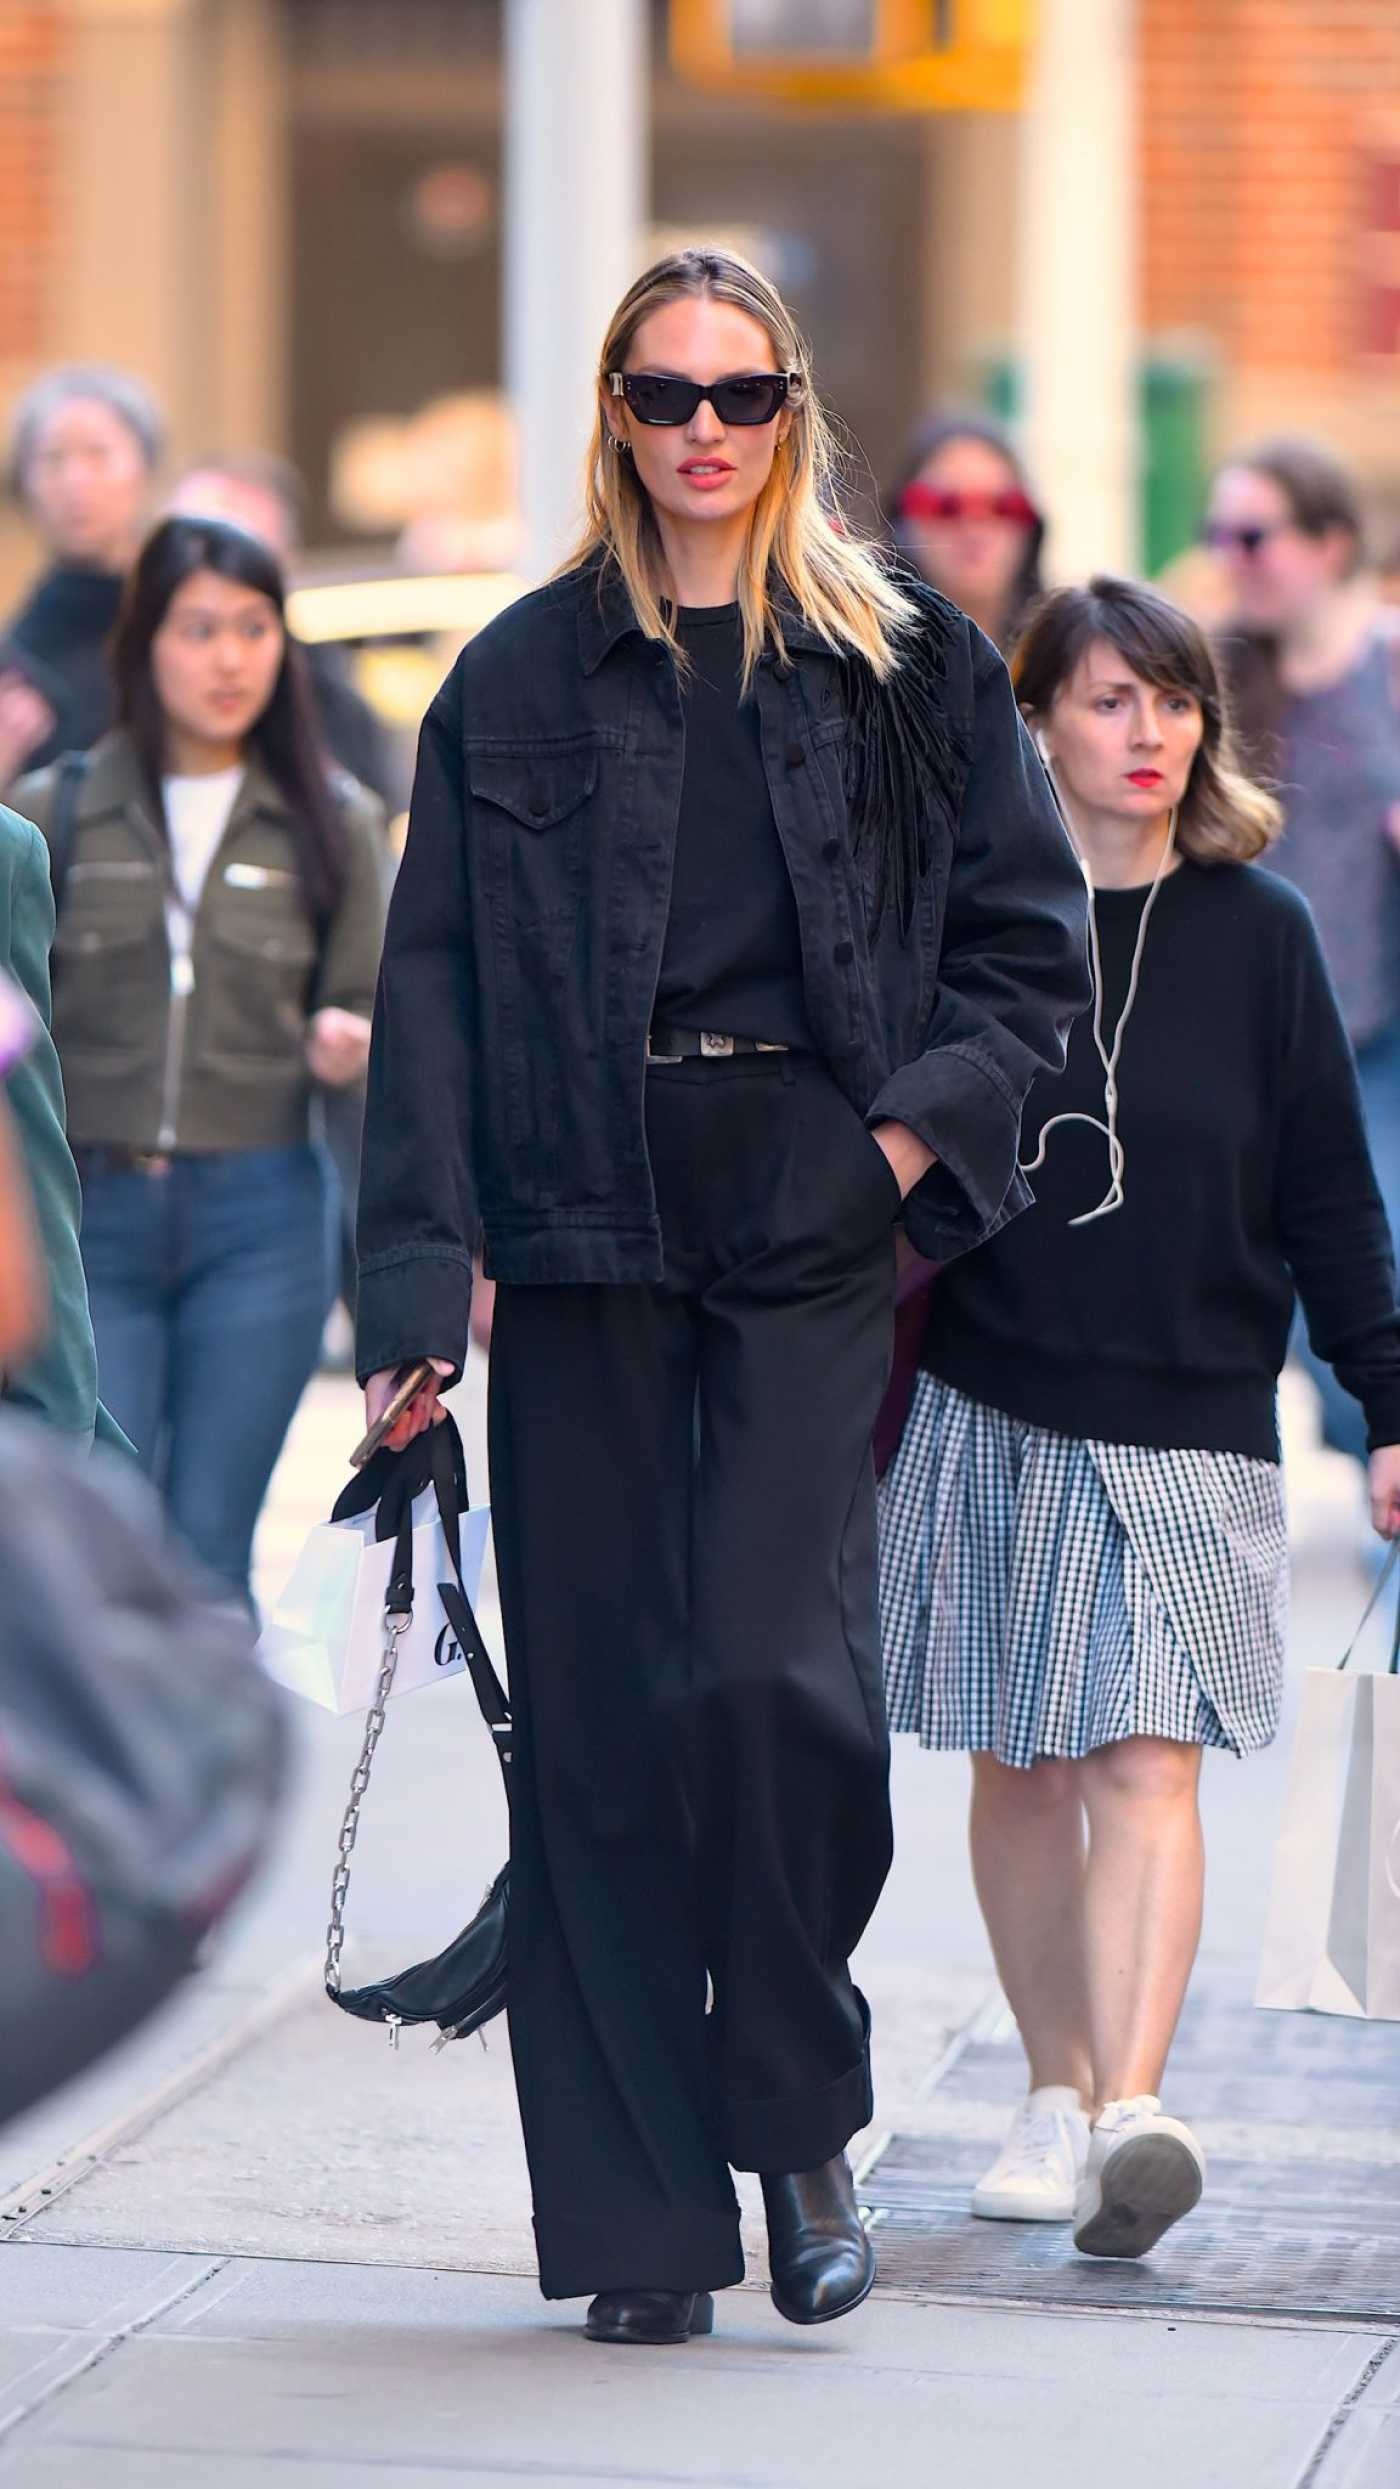 Candice Swanepoel in a Black Denim Jacket Was Seen Out in NYC 04/24/2019